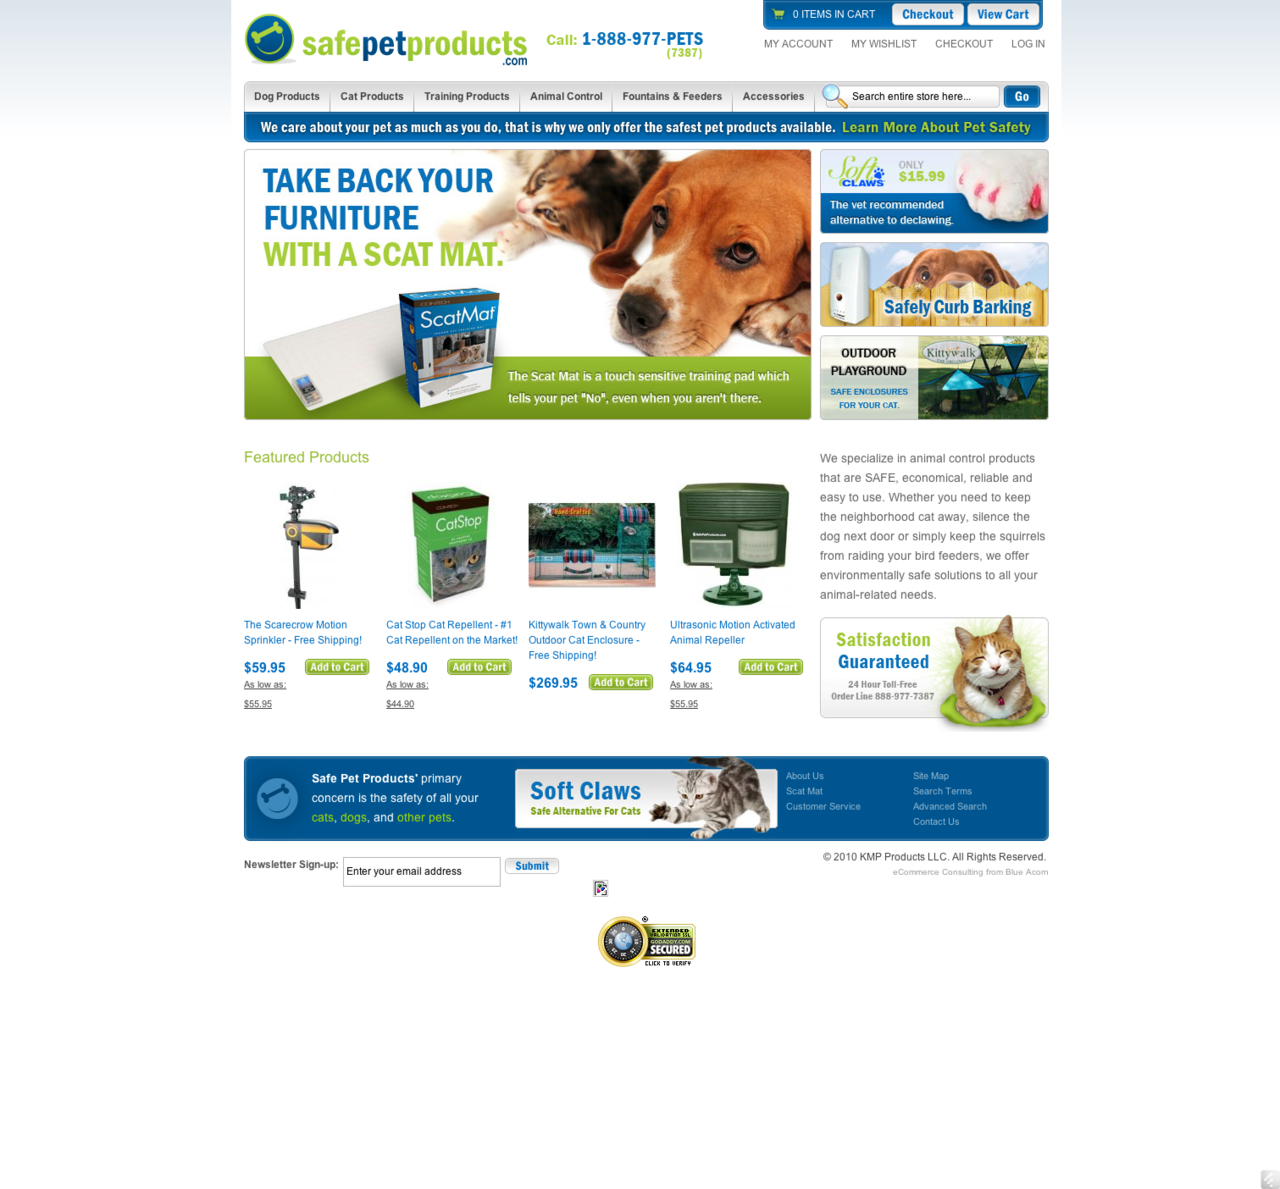 www.safepetproducts.com